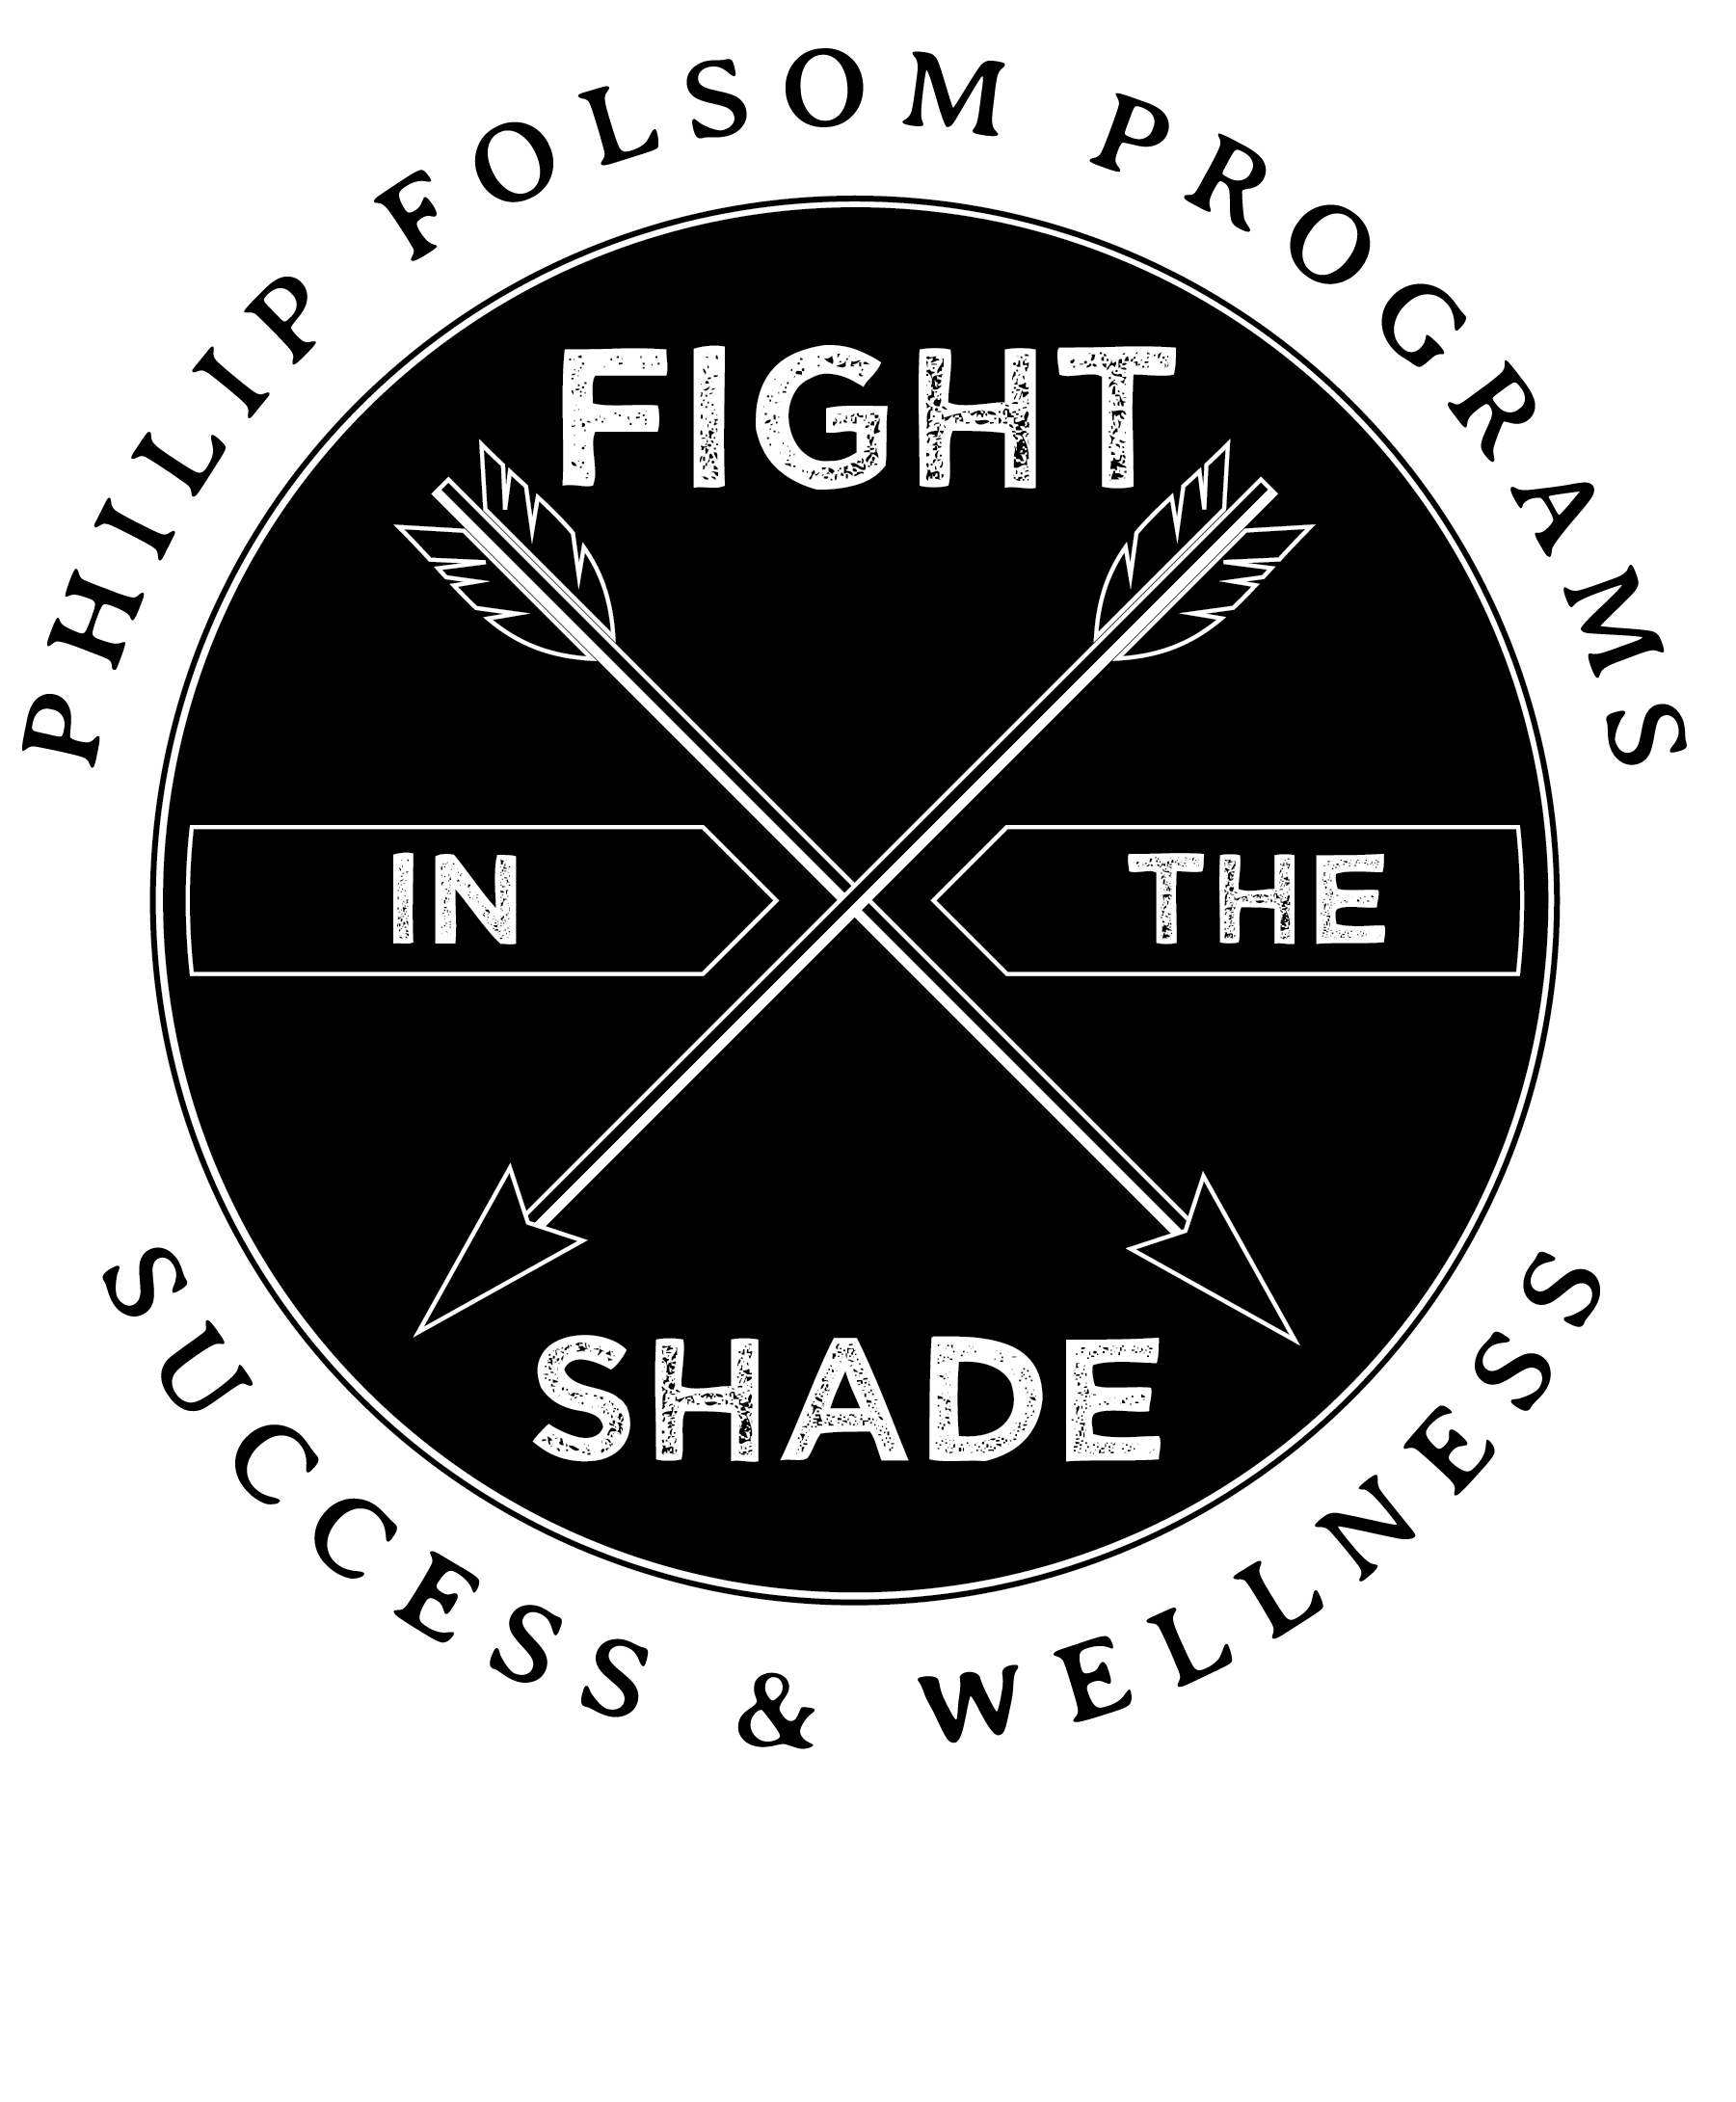 Health is Performance - Wellness is one of the most impactful aspects of culture development.  Across all industries, investing in a wellness program has proven to have a tremendous ROI by reducing organizational health care costs and significantly reduced loss-of-work numbers based on stress and illness.  In addition, Philip's Fight in the Shade Program leads to increased performance by reducing stress which leads to increased Flow states and well-being in the workplace.